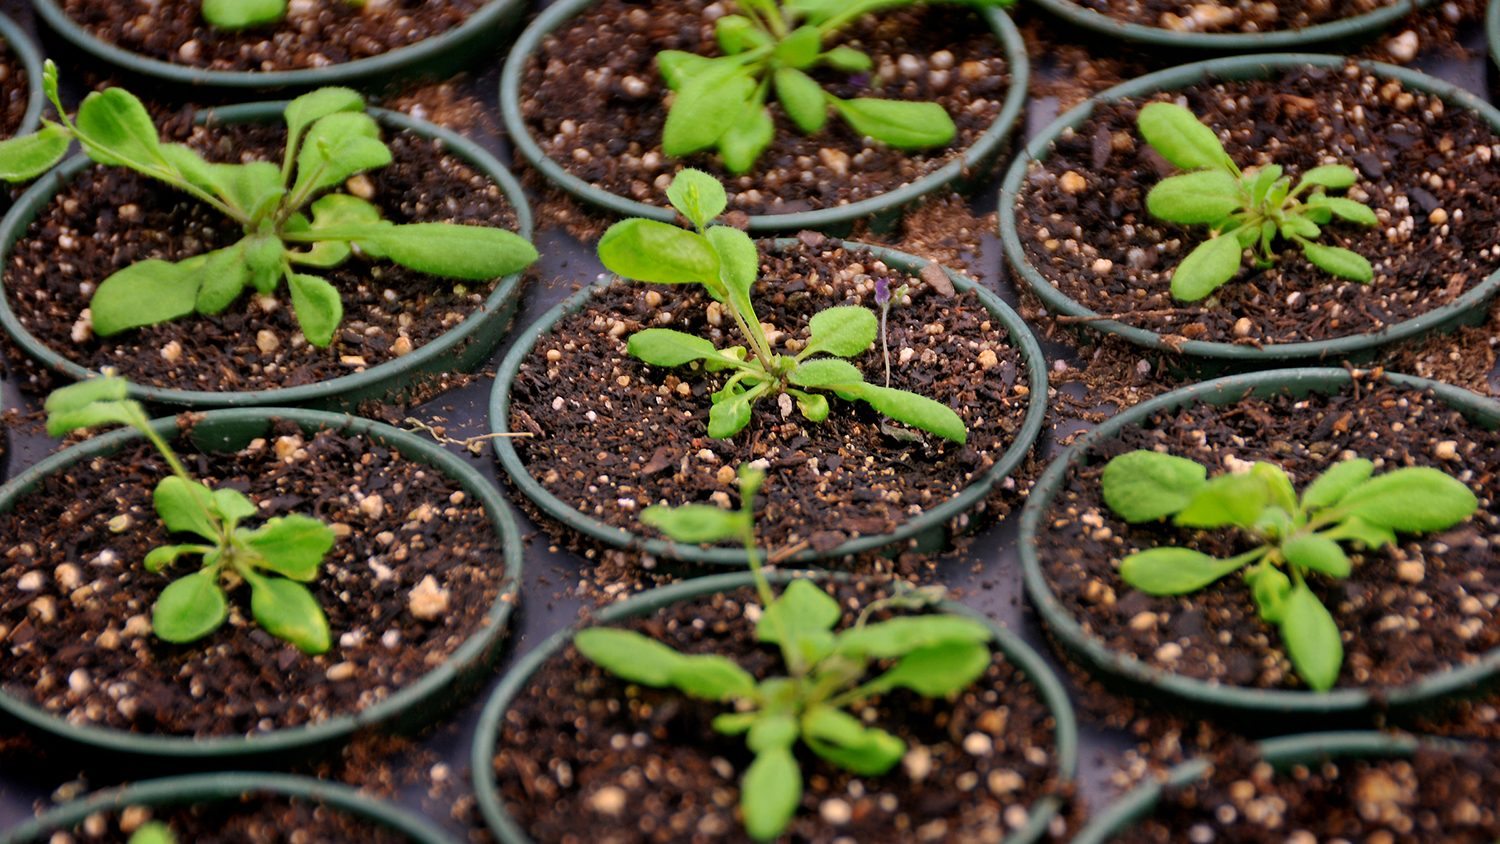 Seven seedlings in containers